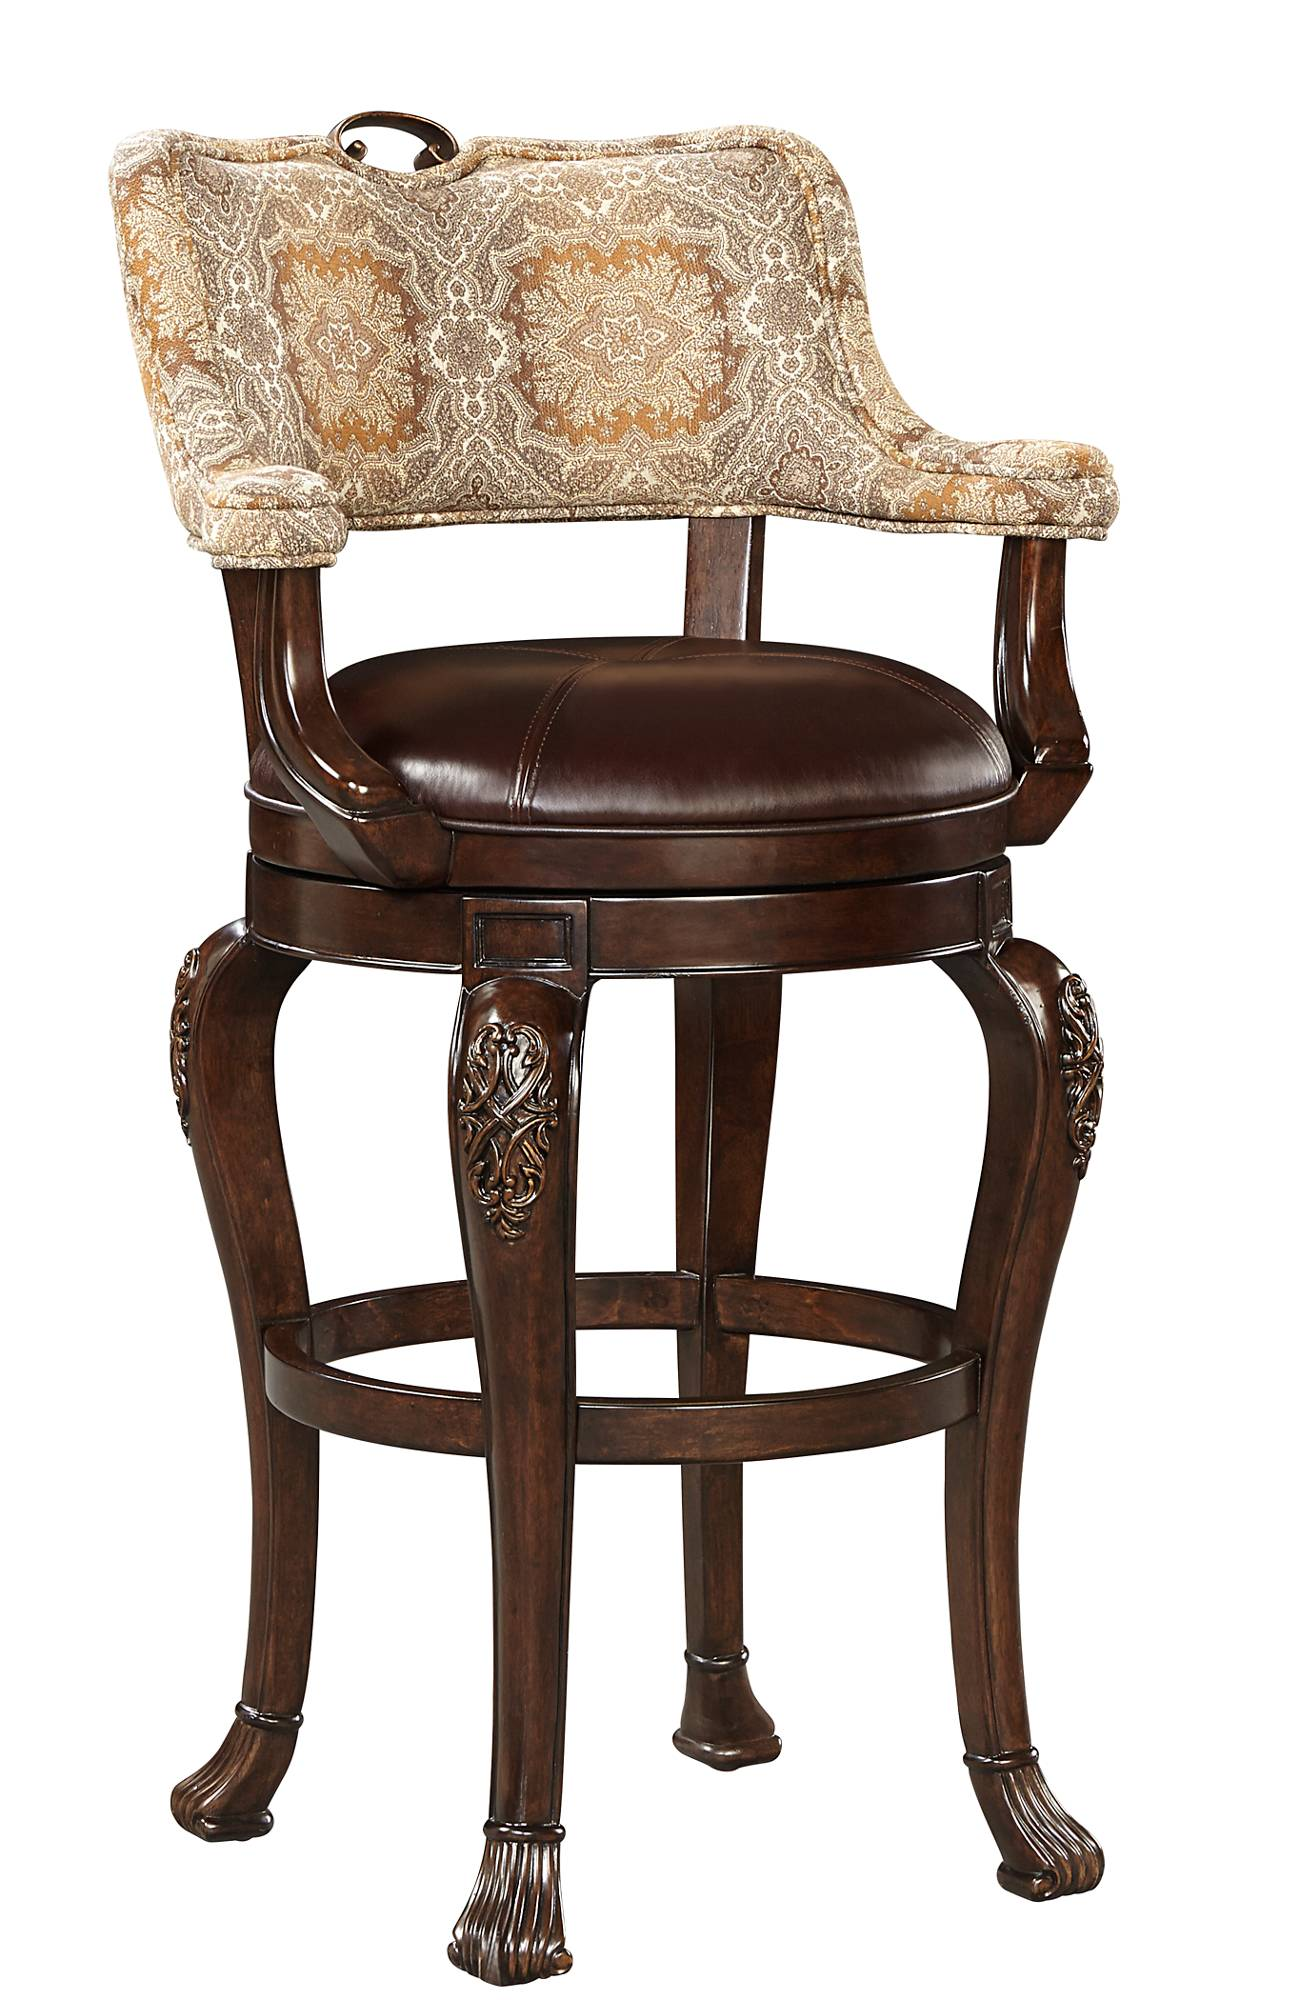 Stanley Furniture Casa D'Onore Bar Stool - Item Number: 443-11-73